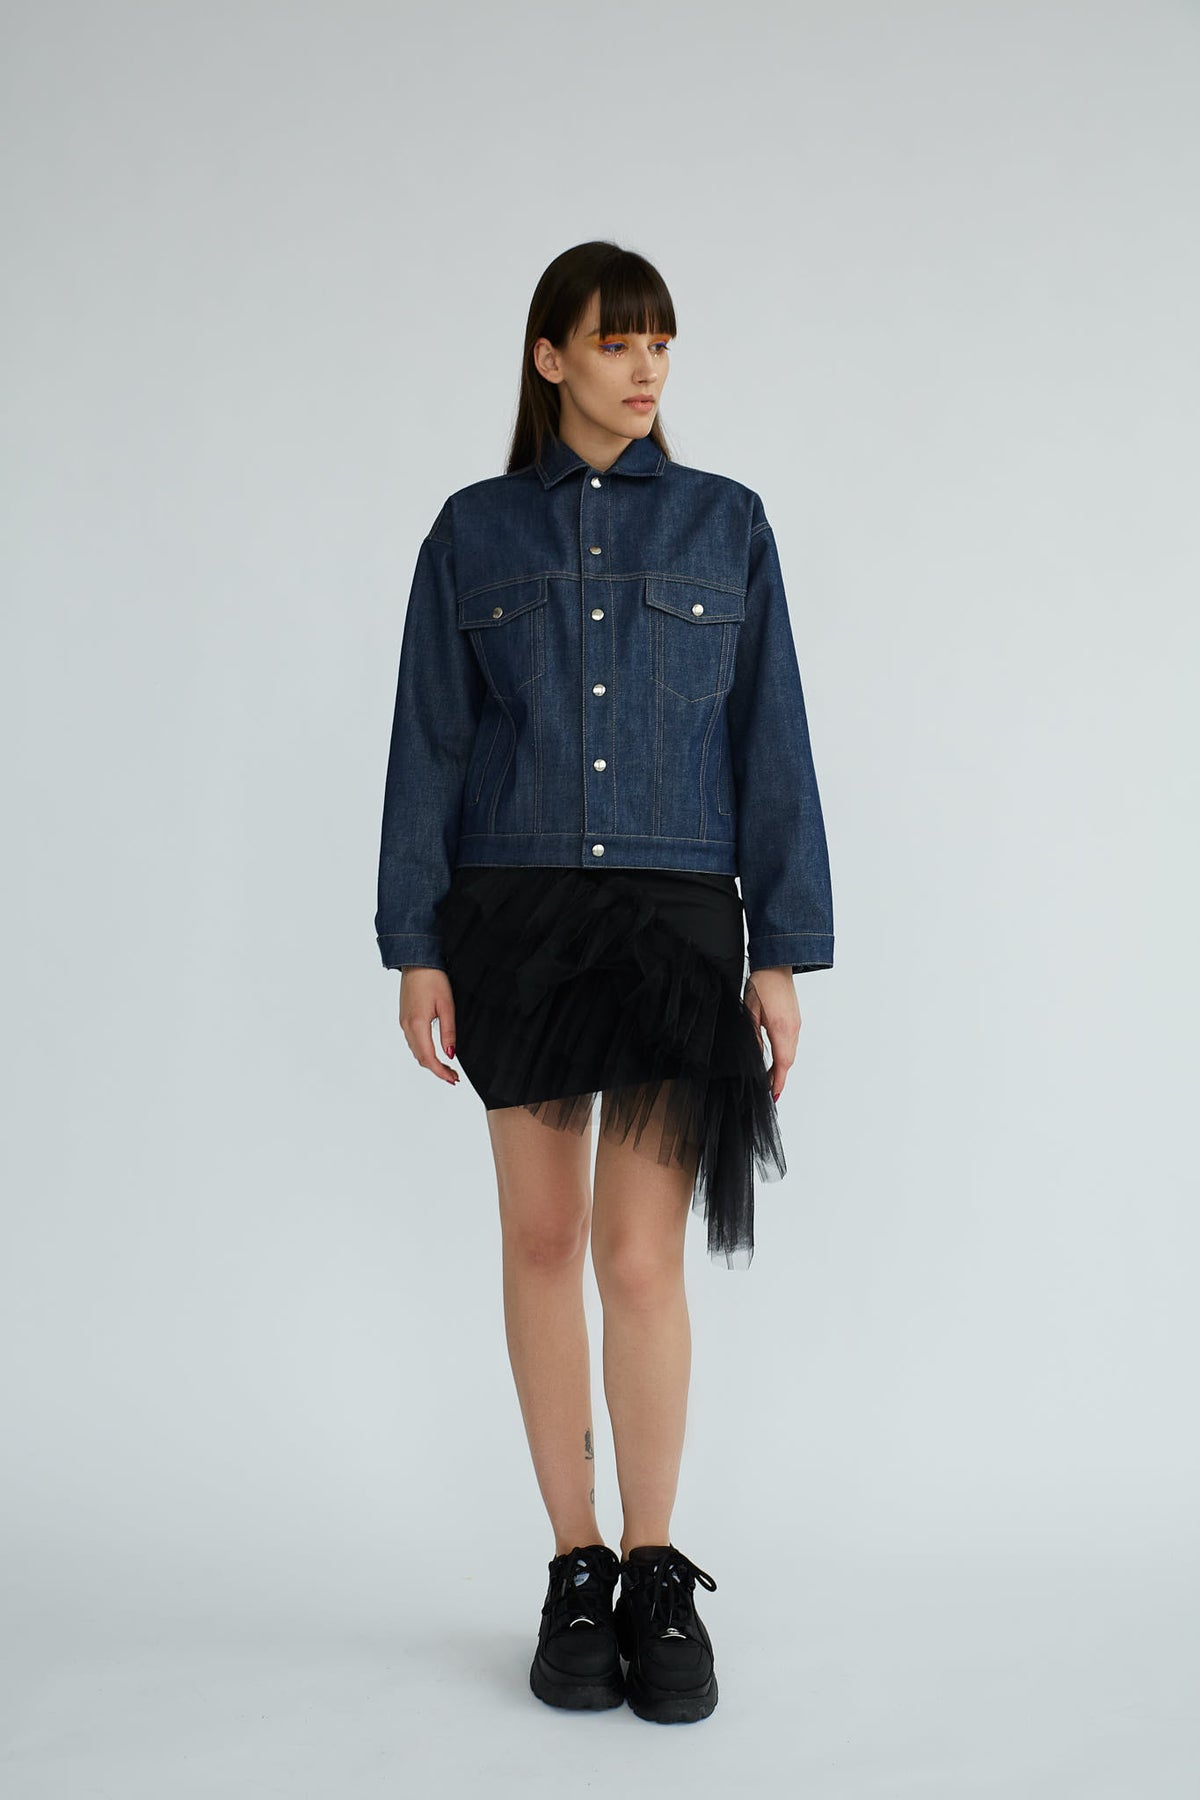 Genes | Blue Denim Jacket - Le Slap - Dark With Snap Buttons Denim Fashion